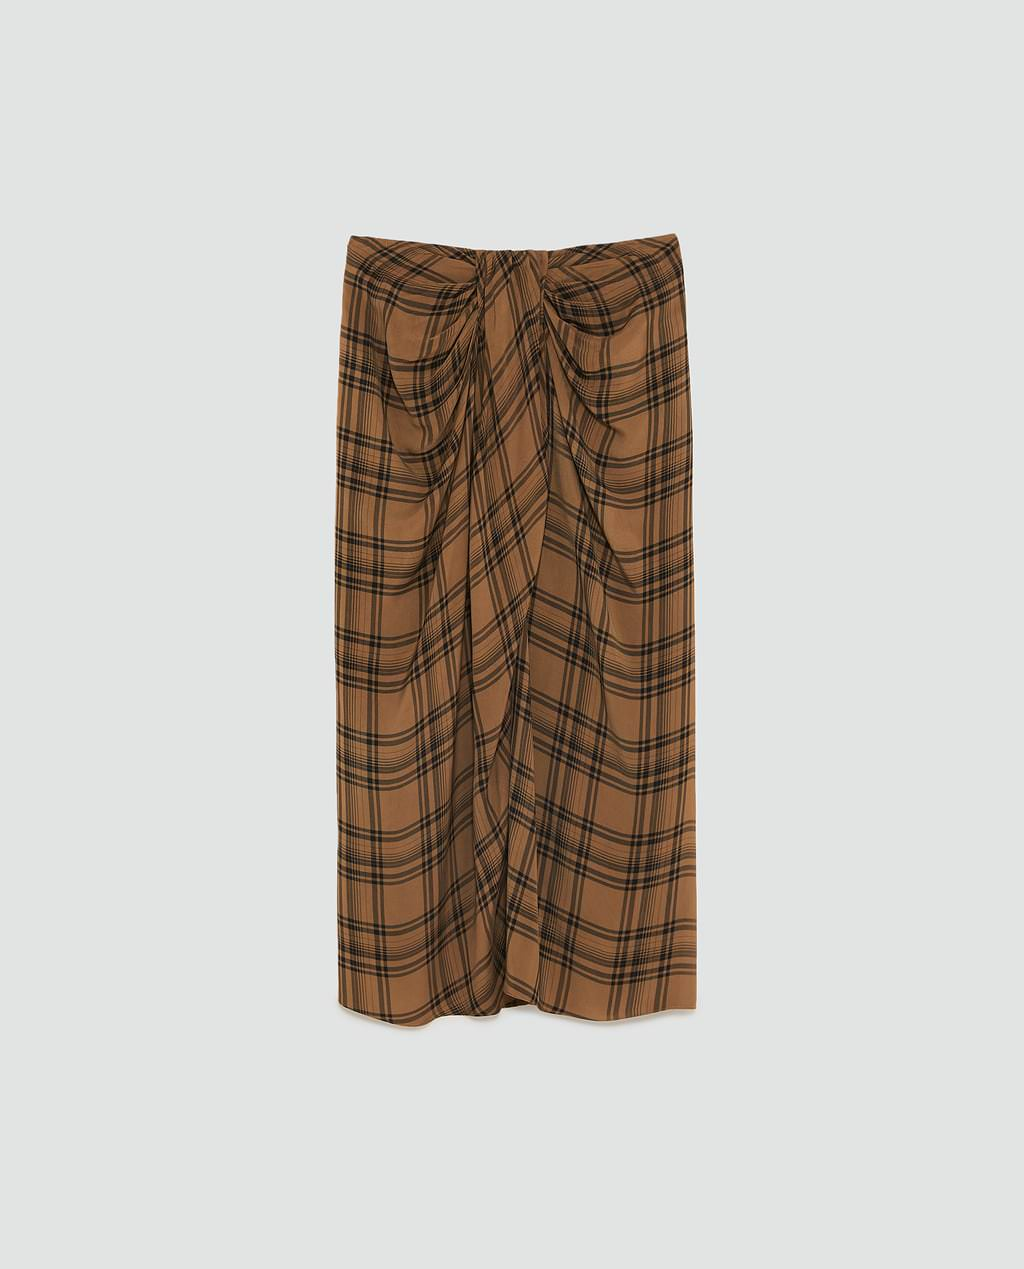 Zara is selling your grandfathers sarong for almost rm400 image via zara stopboris Images